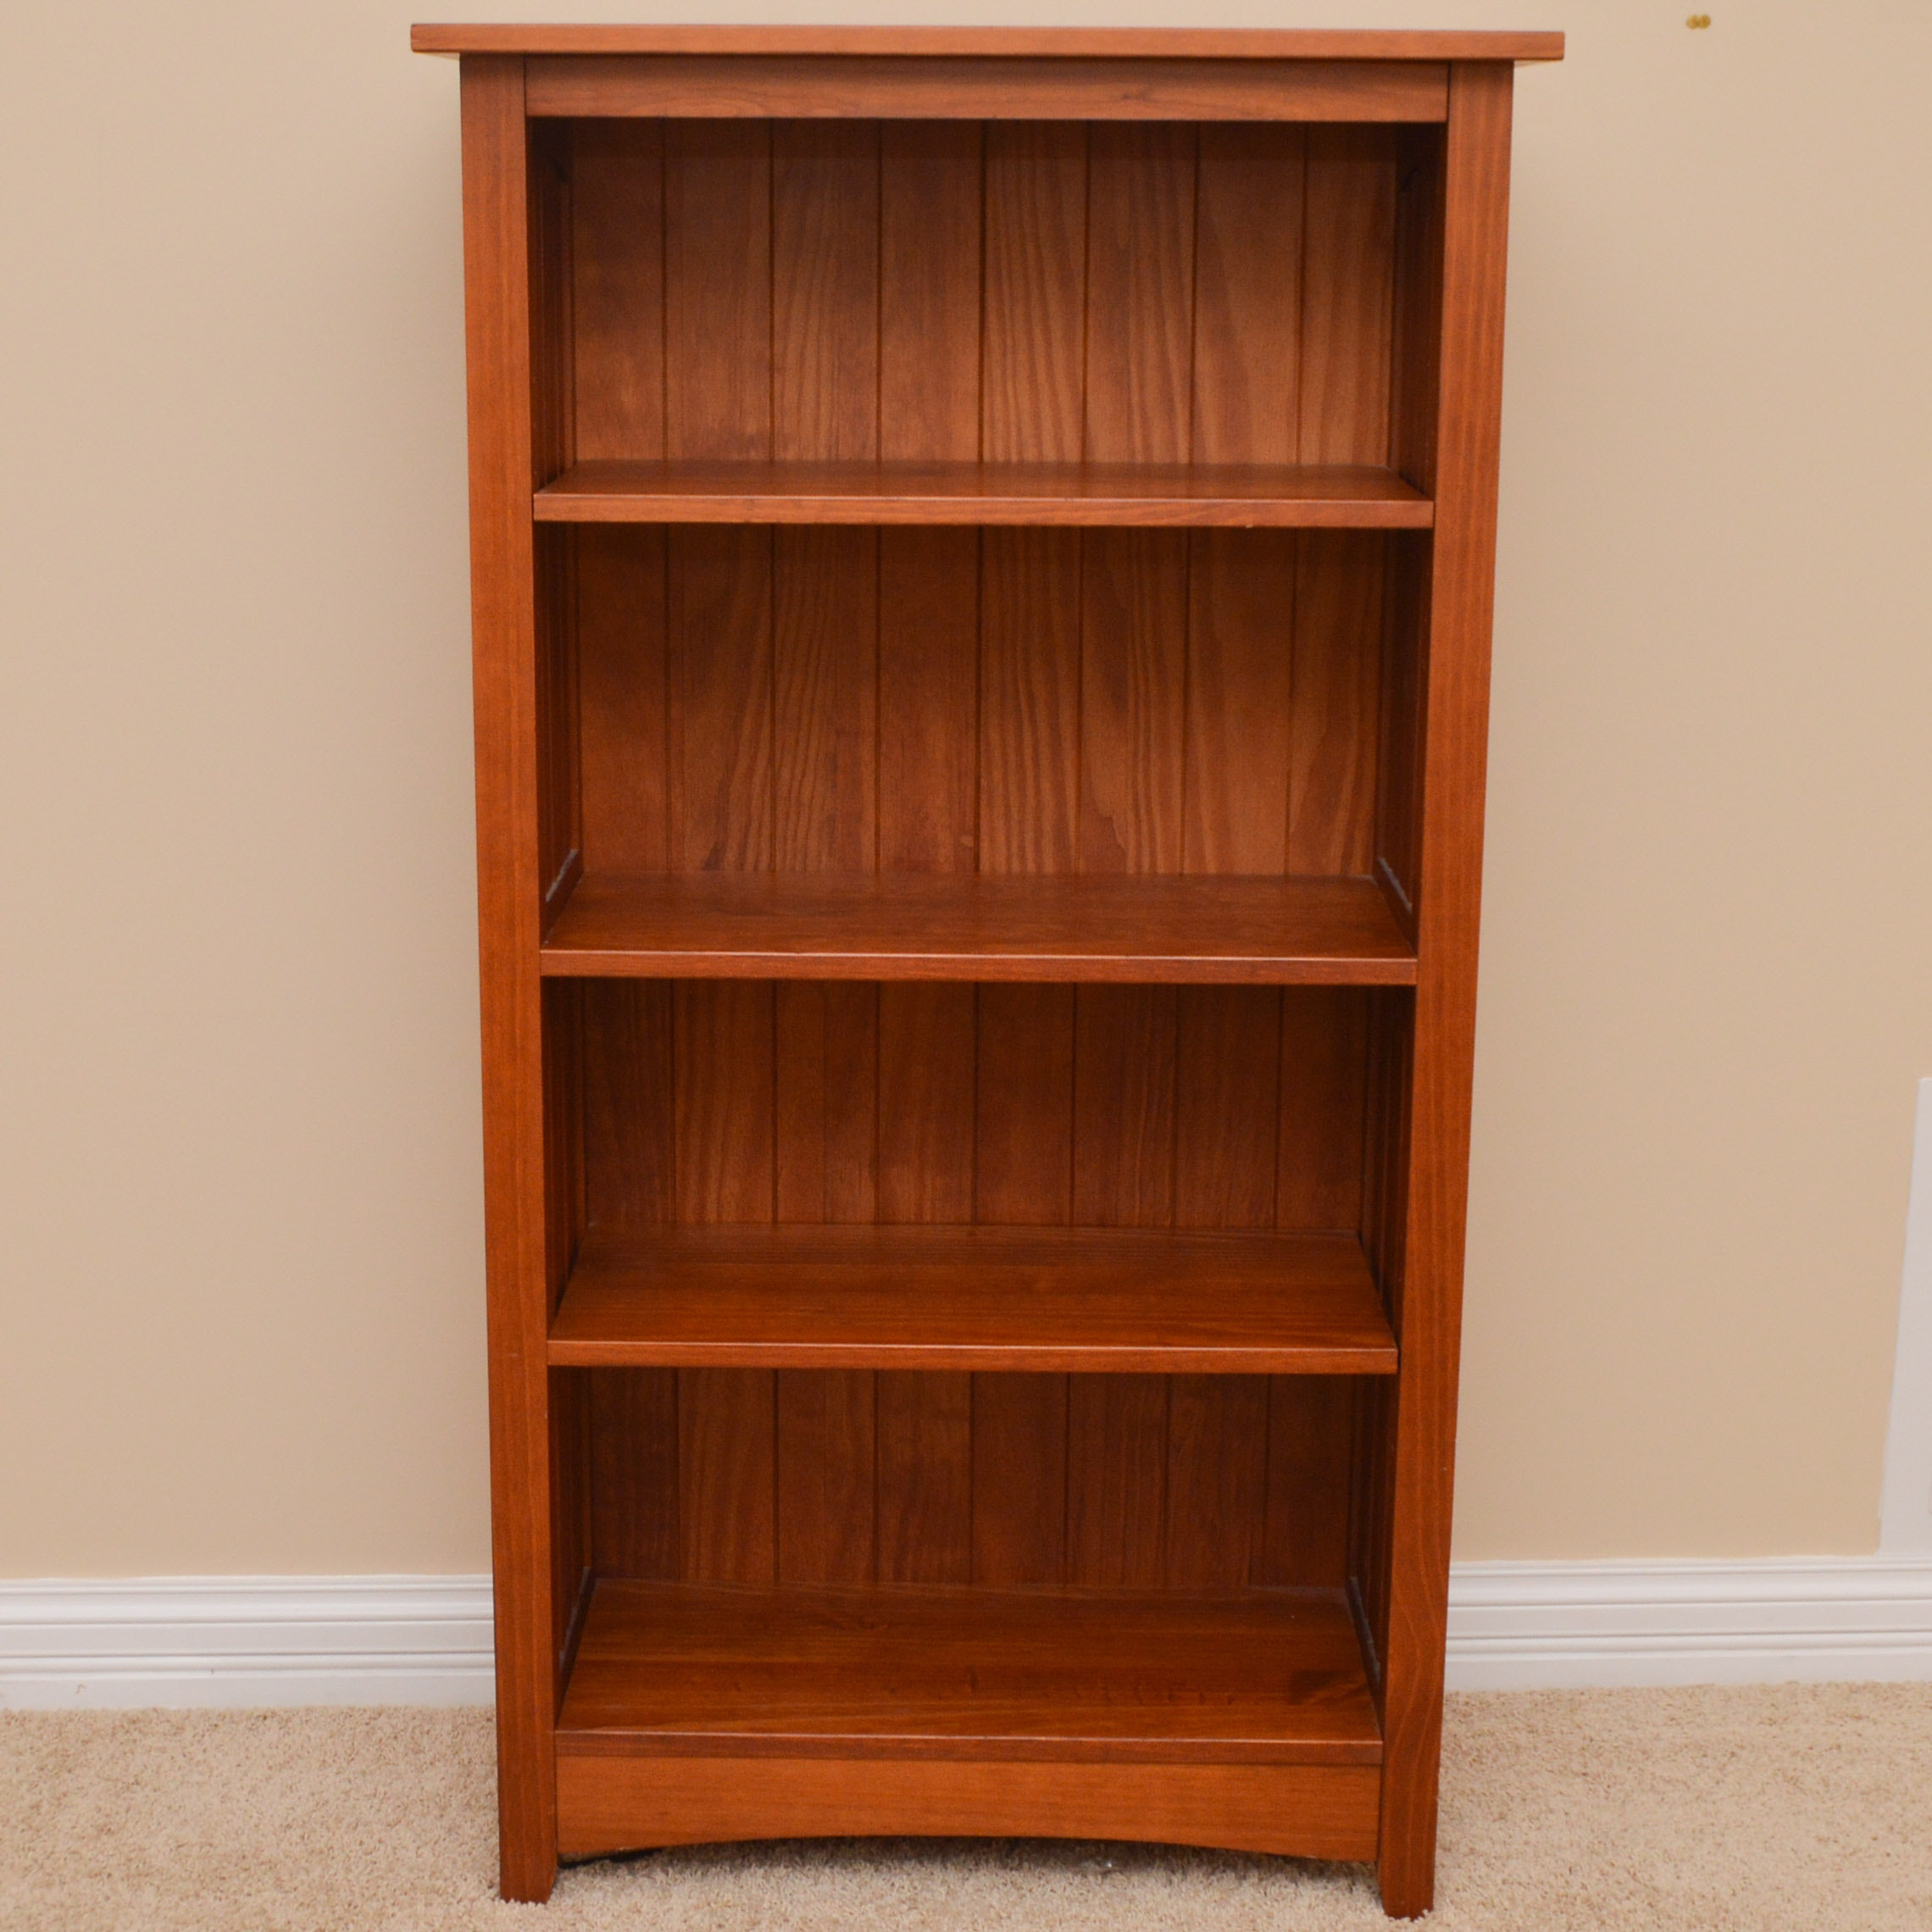 Stained Oak Mission Style Standing Shelves